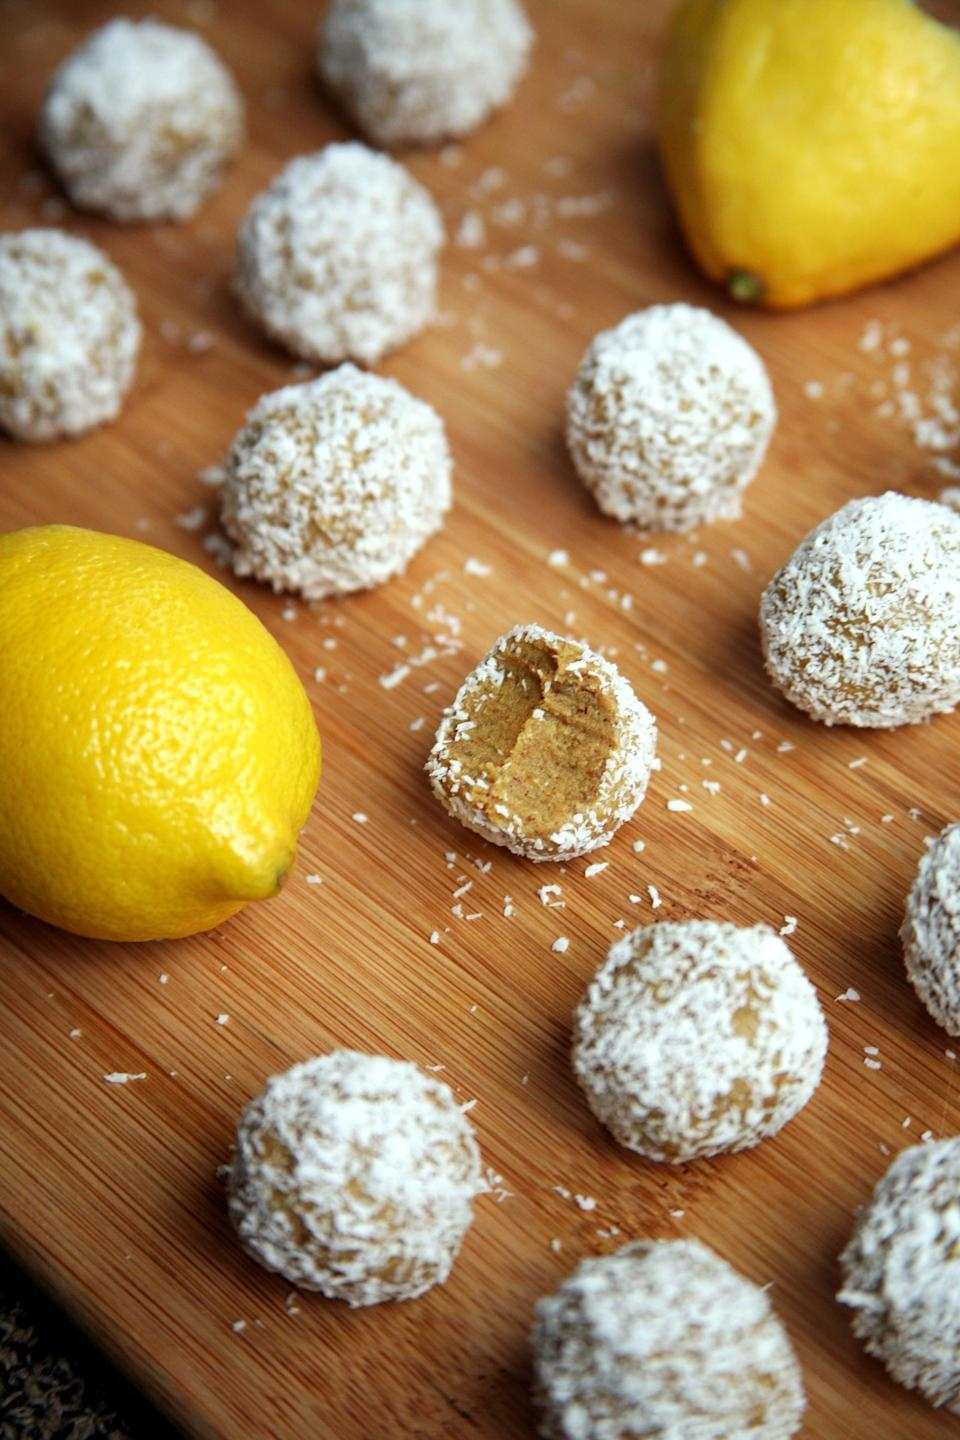 """<p>These lemon coconut protein balls are made with just five ingredients: raw almonds, vanilla protein powder, juicy dates, lemon juice, and unsweetened coconut.</p> <p><strong>Get the recipe:</strong> <a href=""""https://www.popsugar.com/fitness/Lemon-Coconut-Protein-Balls-41160578"""" class=""""link rapid-noclick-resp"""" rel=""""nofollow noopener"""" target=""""_blank"""" data-ylk=""""slk:lemon coconut protein balls"""">lemon coconut protein balls</a></p>"""